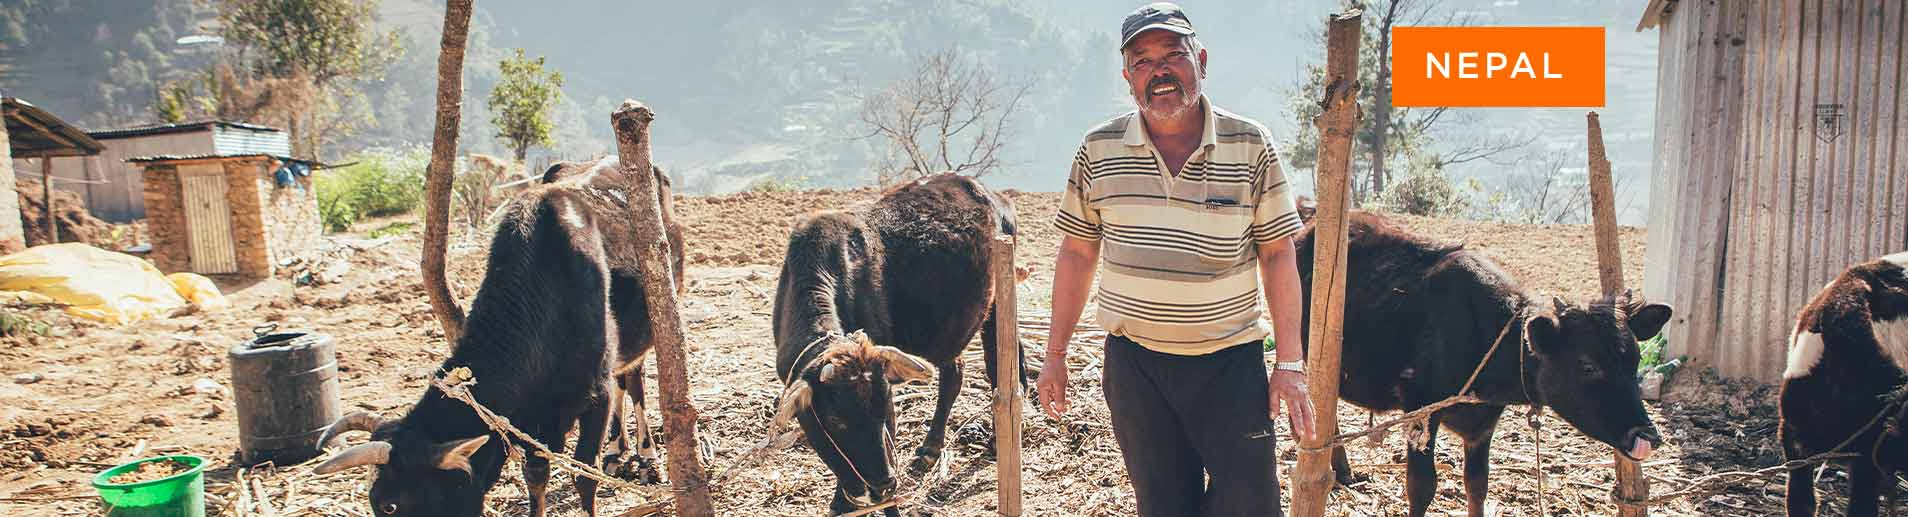 Nepal man with cattle project